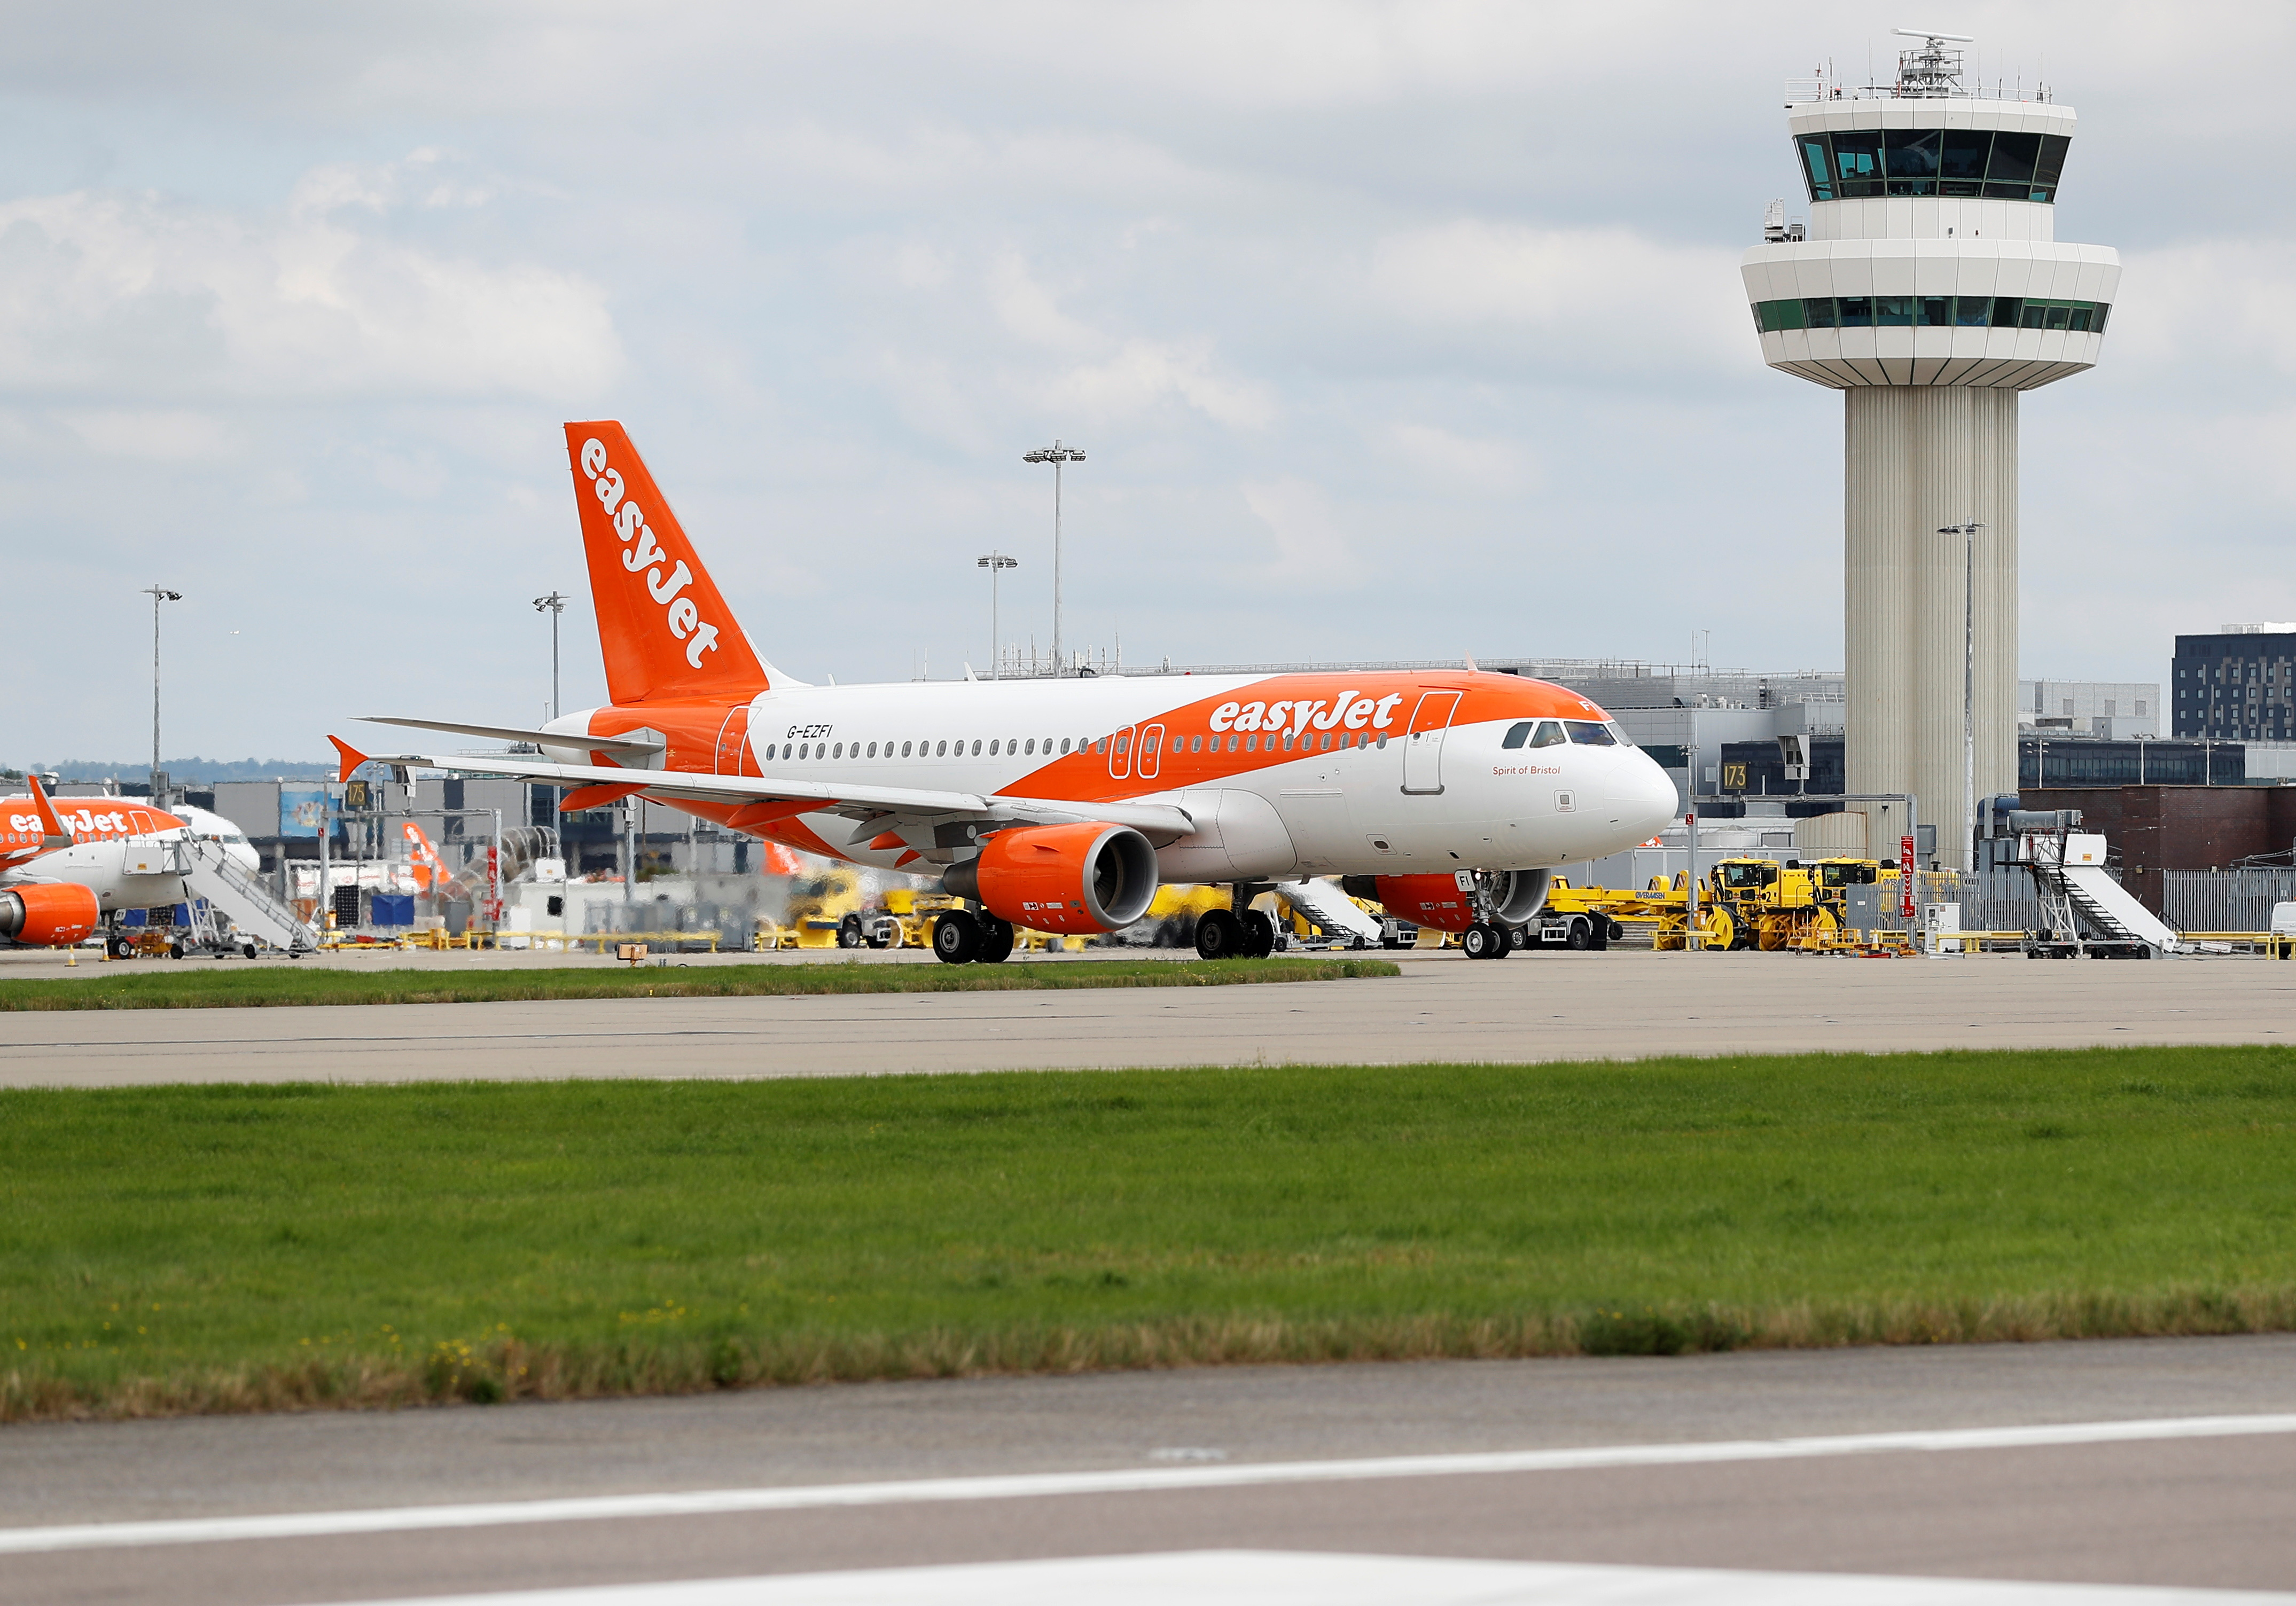 An Easyjet Airbus aircraft taxis close to the northern runway at Gatwick Airport in Crawley, Britain, August 25, 2021.  REUTERS/Peter Nicholls